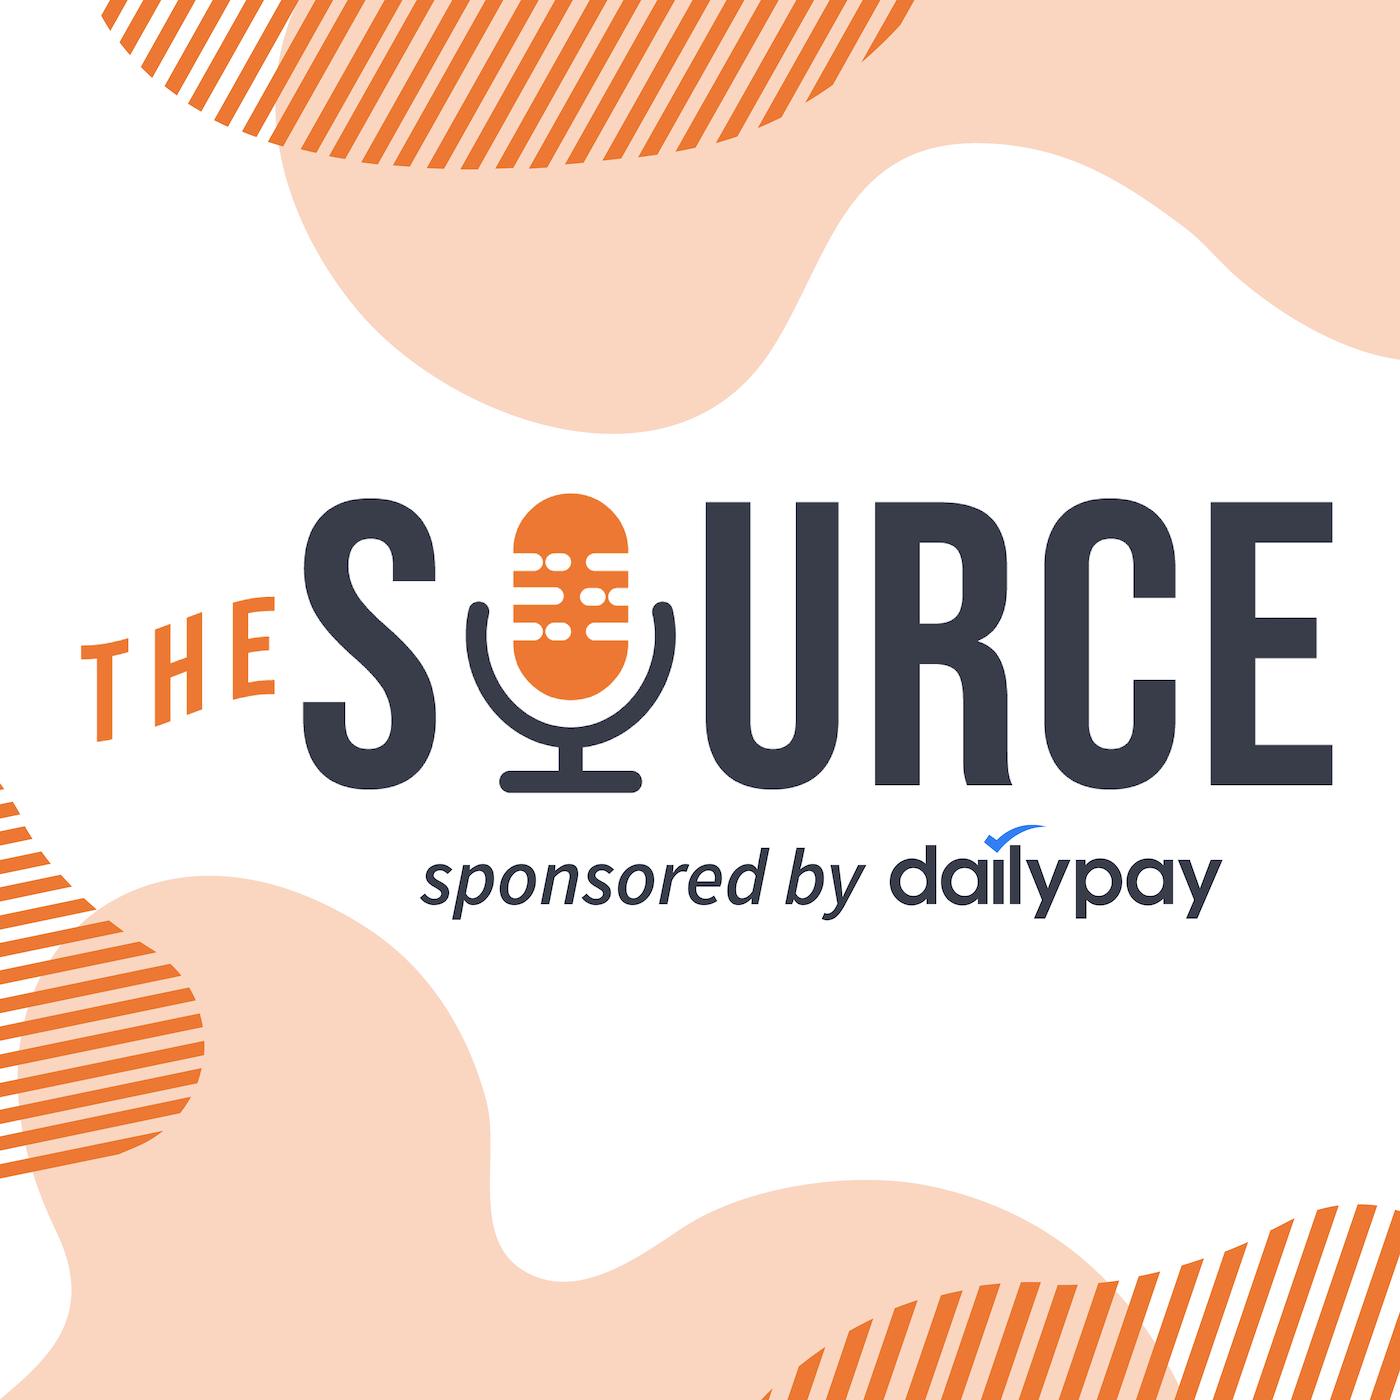 The Source by DailyPay